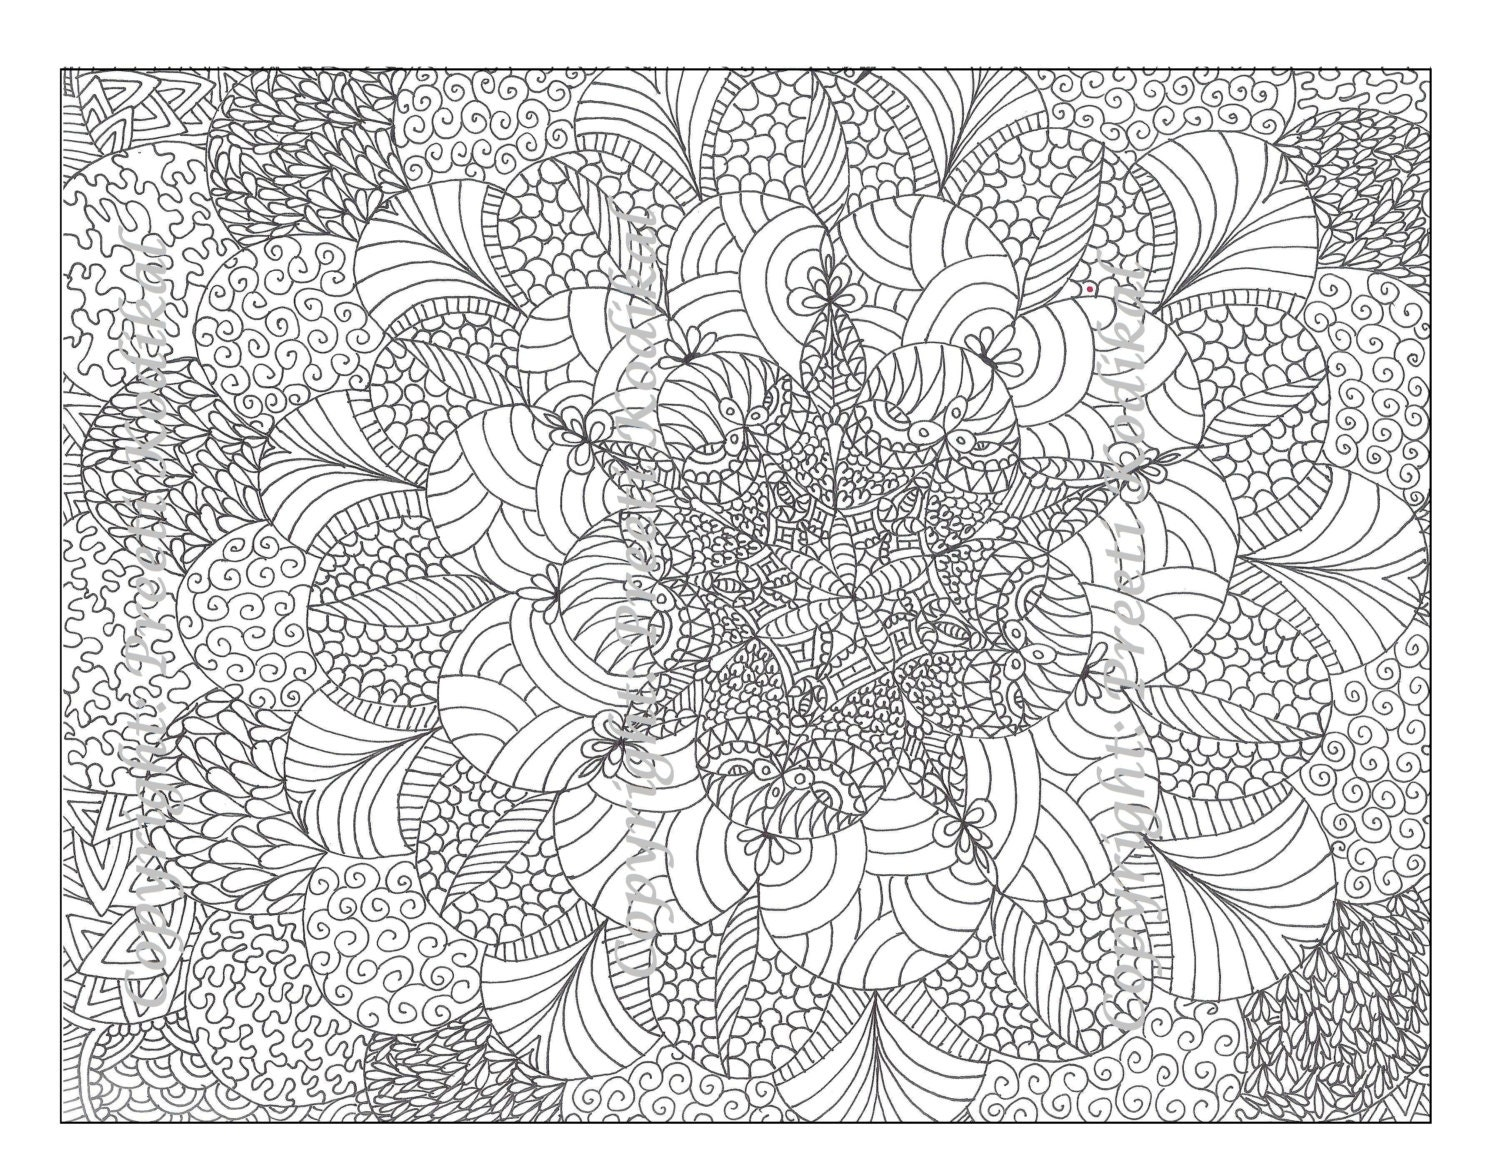 Pen illustration printable coloring page zentangle inspired for Henna coloring pages